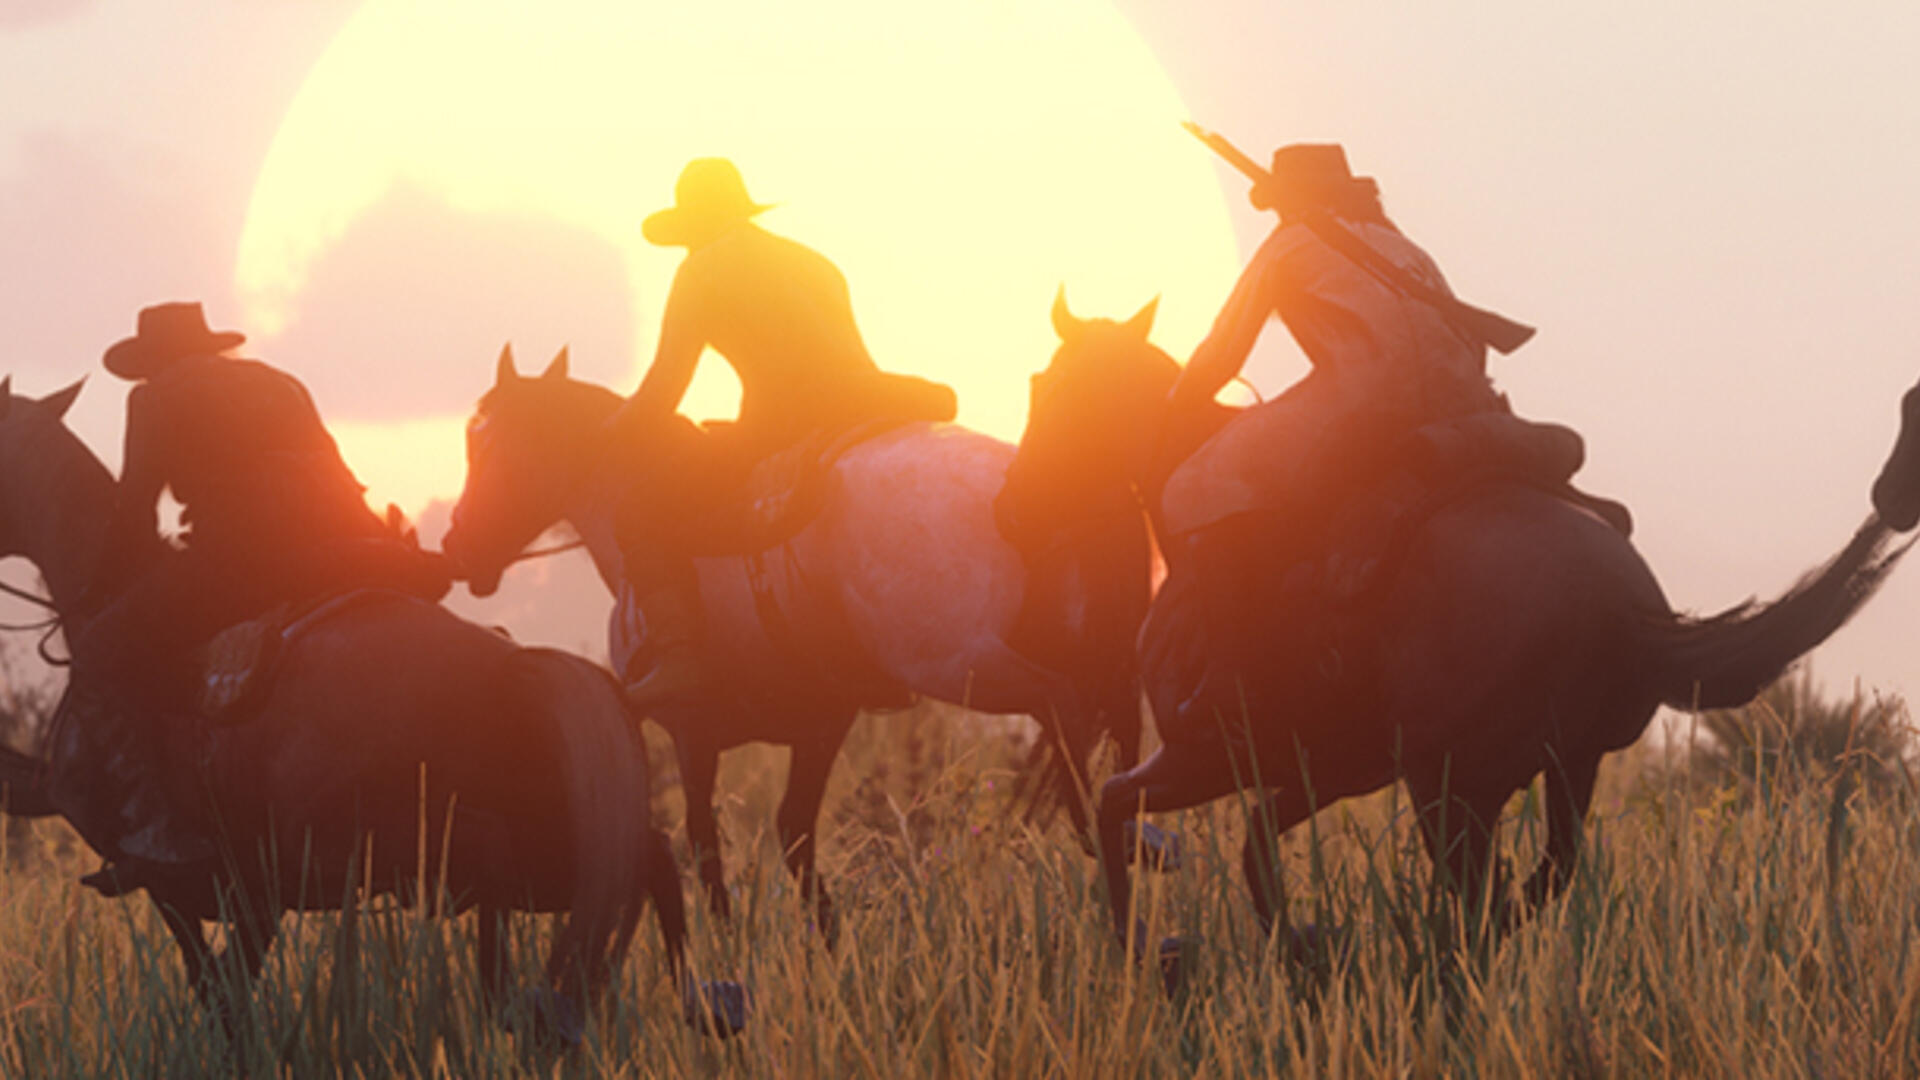 Red Dead Online Microtransactions Are Now Live, Here Are the Prices